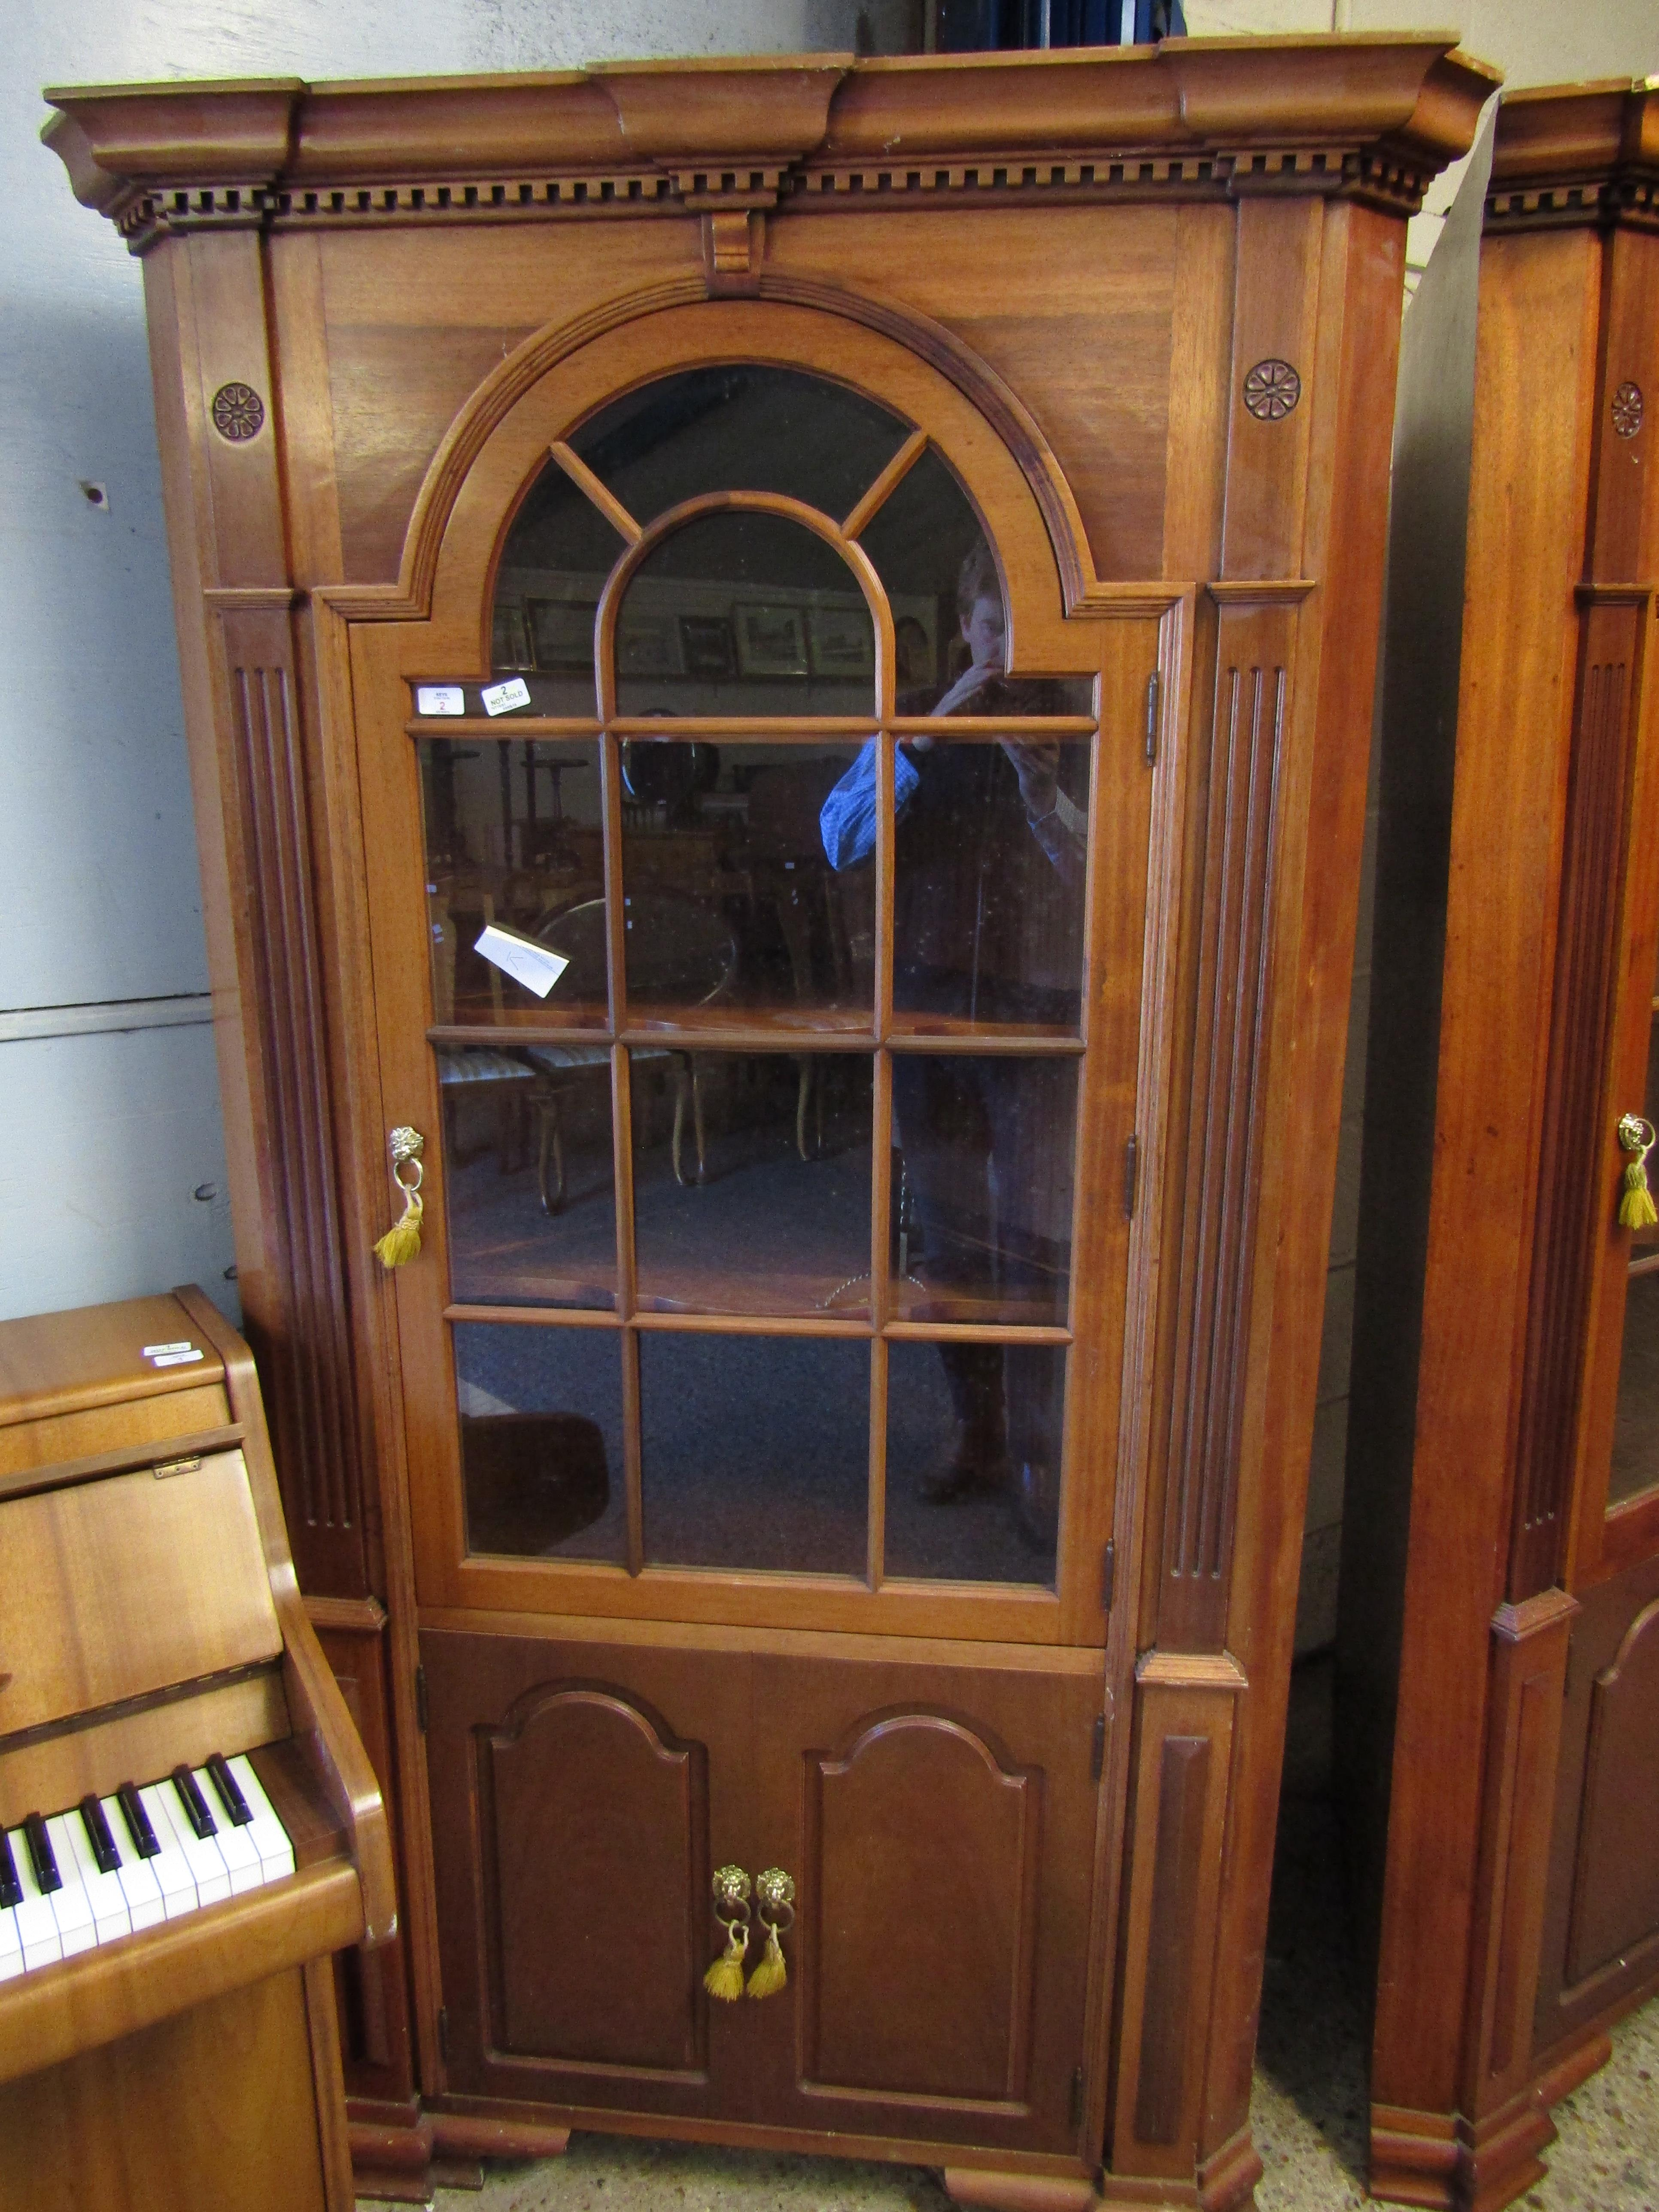 Lot 2 - GOOD QUALITY MAHOGANY LARGE FLOOR STANDING CORNER CUPBOARD WITH ASTRAGAL GLAZED DOOR OVER TWO